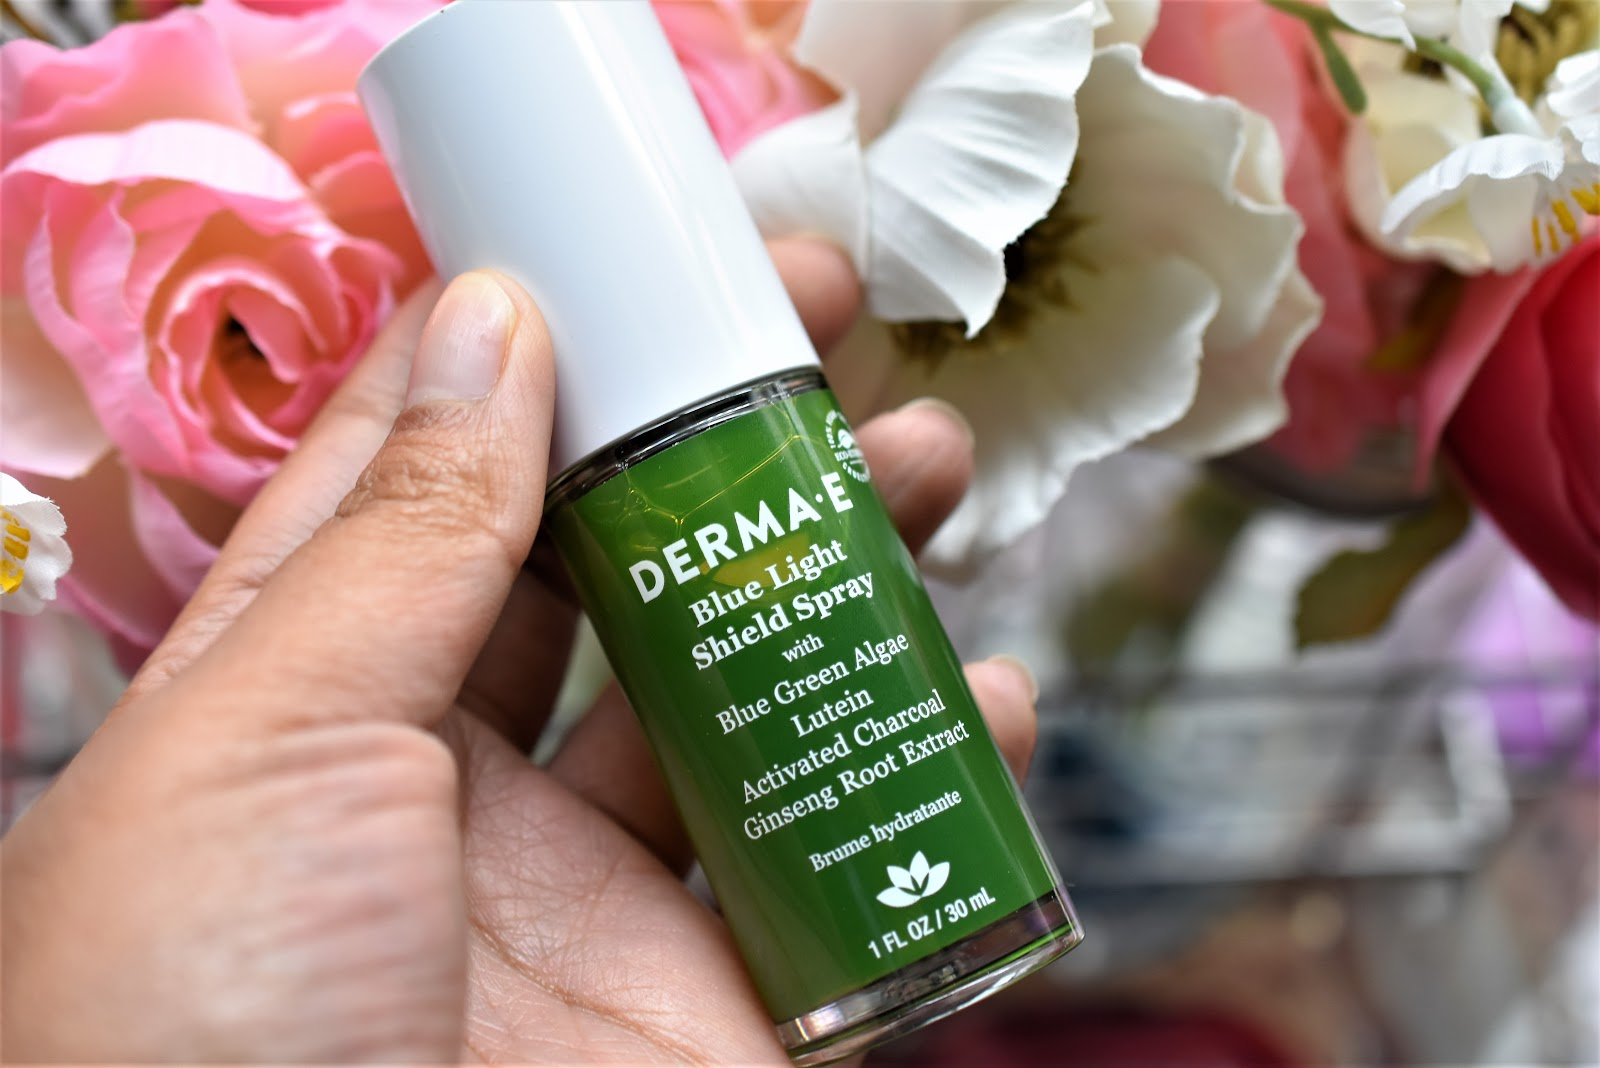 DERMA-E Blue Light Shield Spray